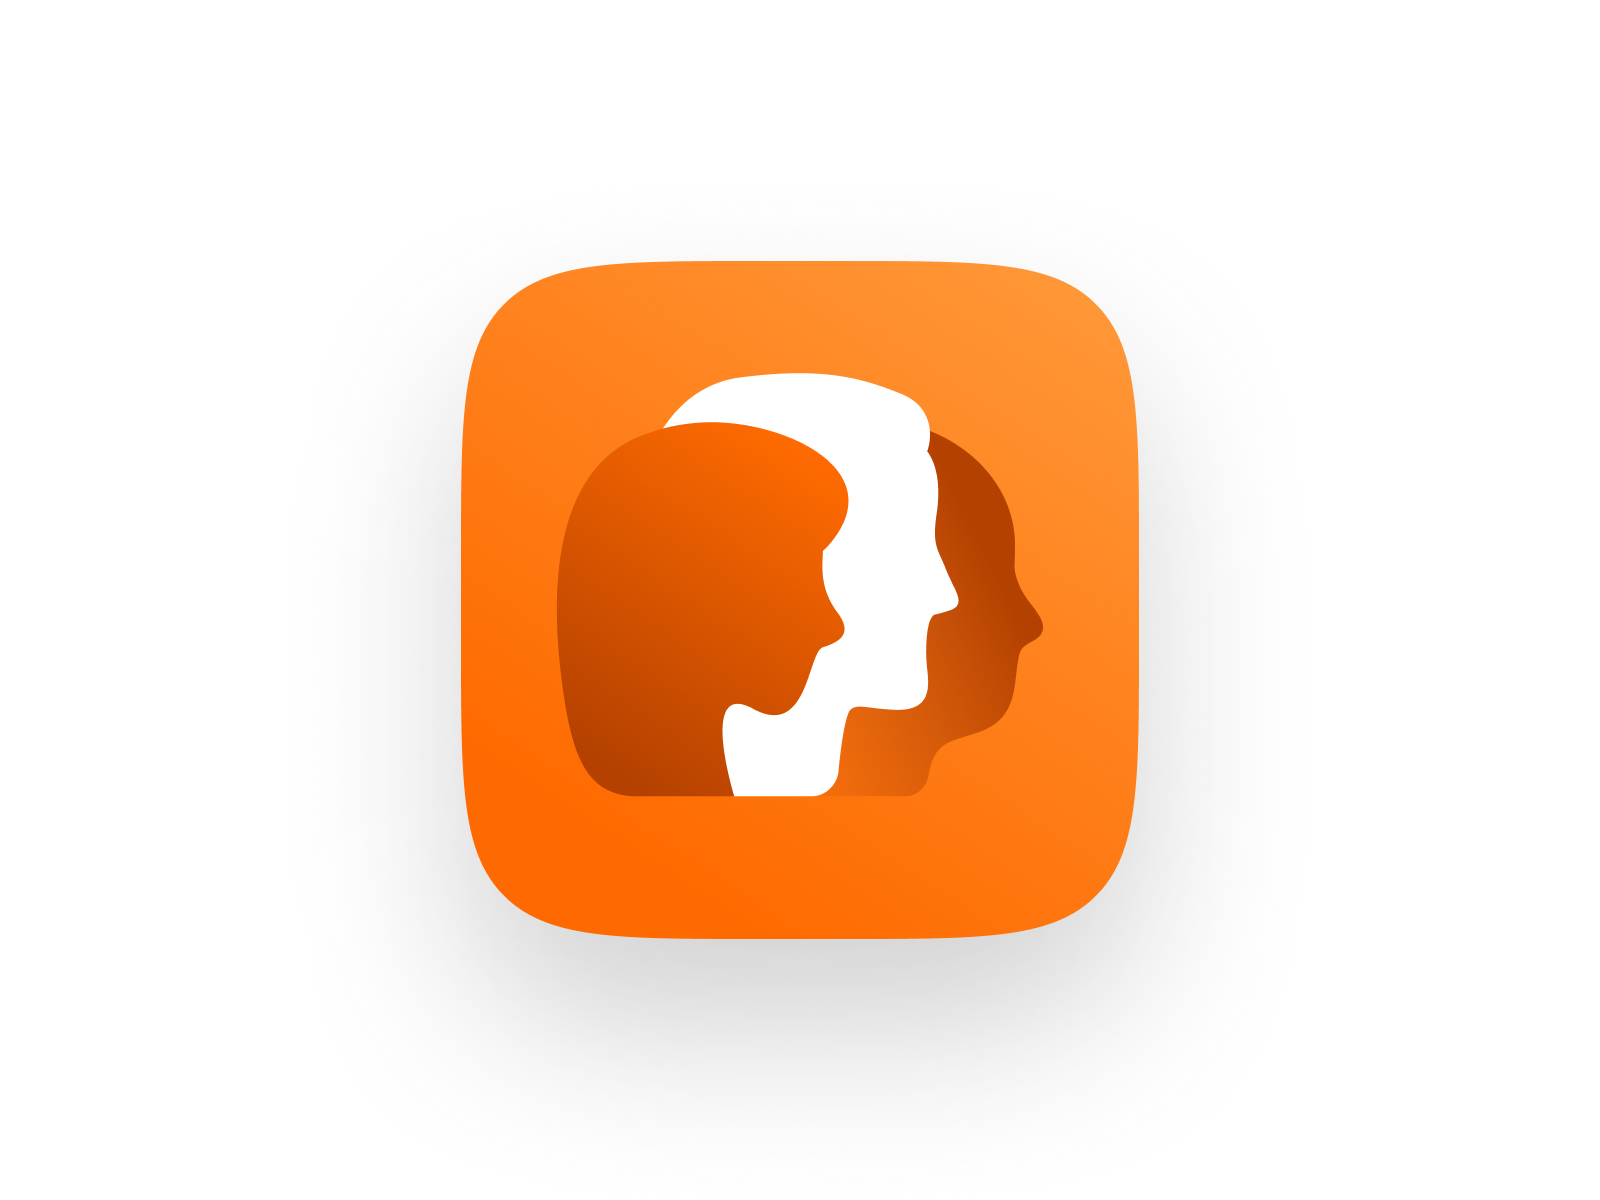 Meetings iOS Icon Ios icon, Android icons, Icon design